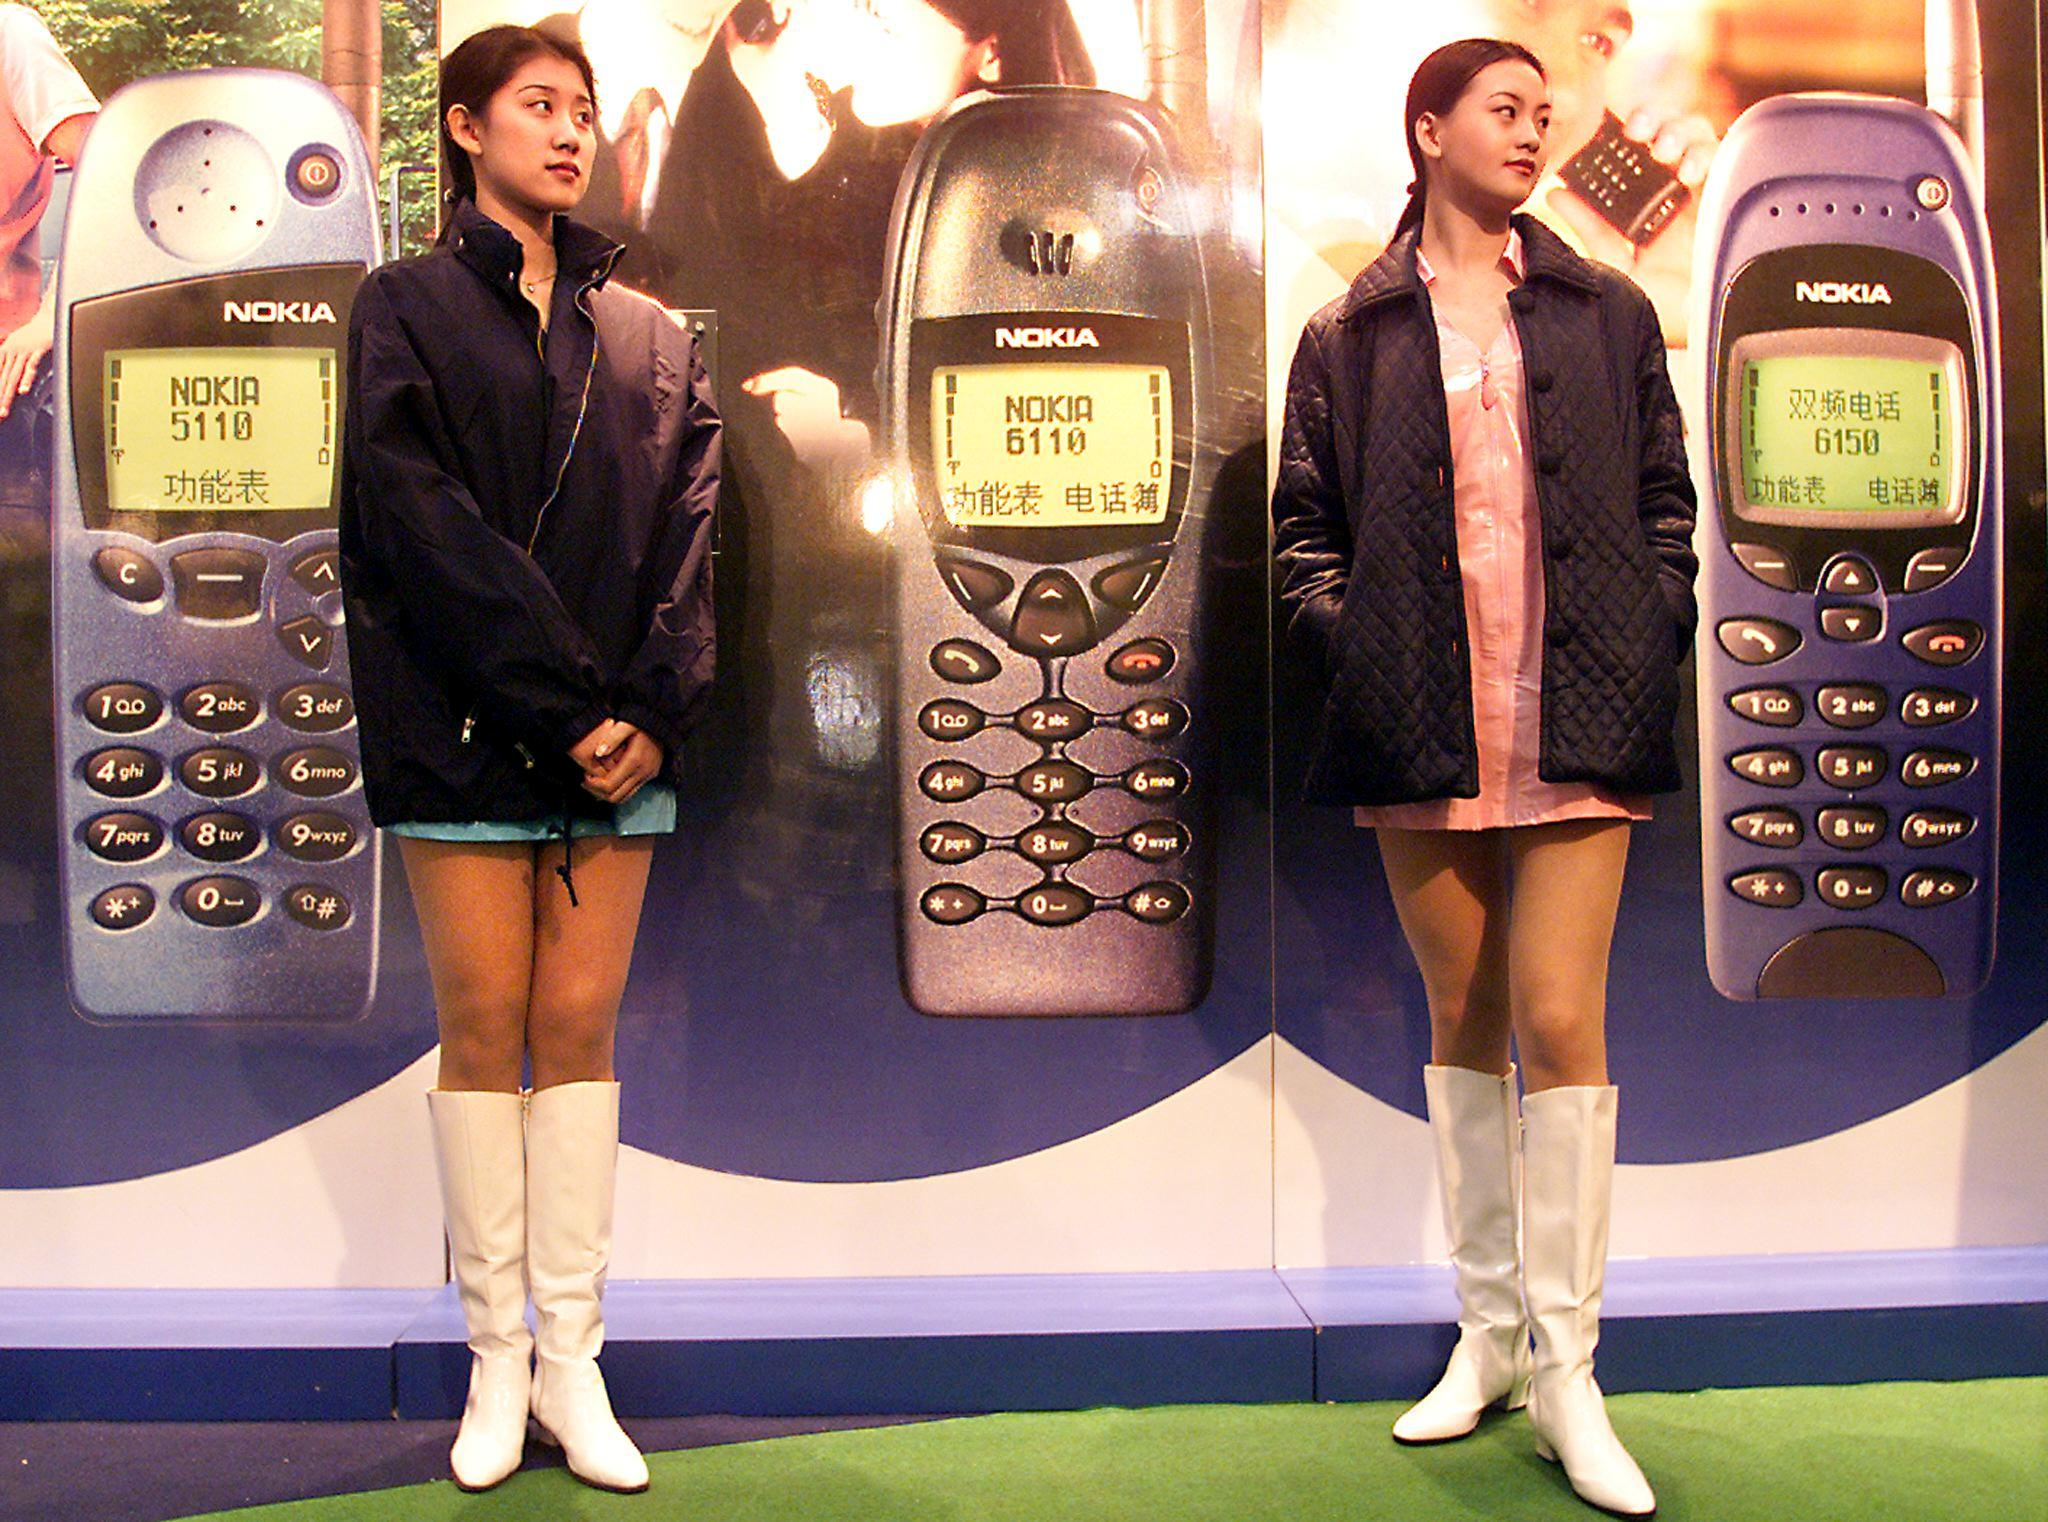 Two young Chinese women working for Nokia stand ready to help customers